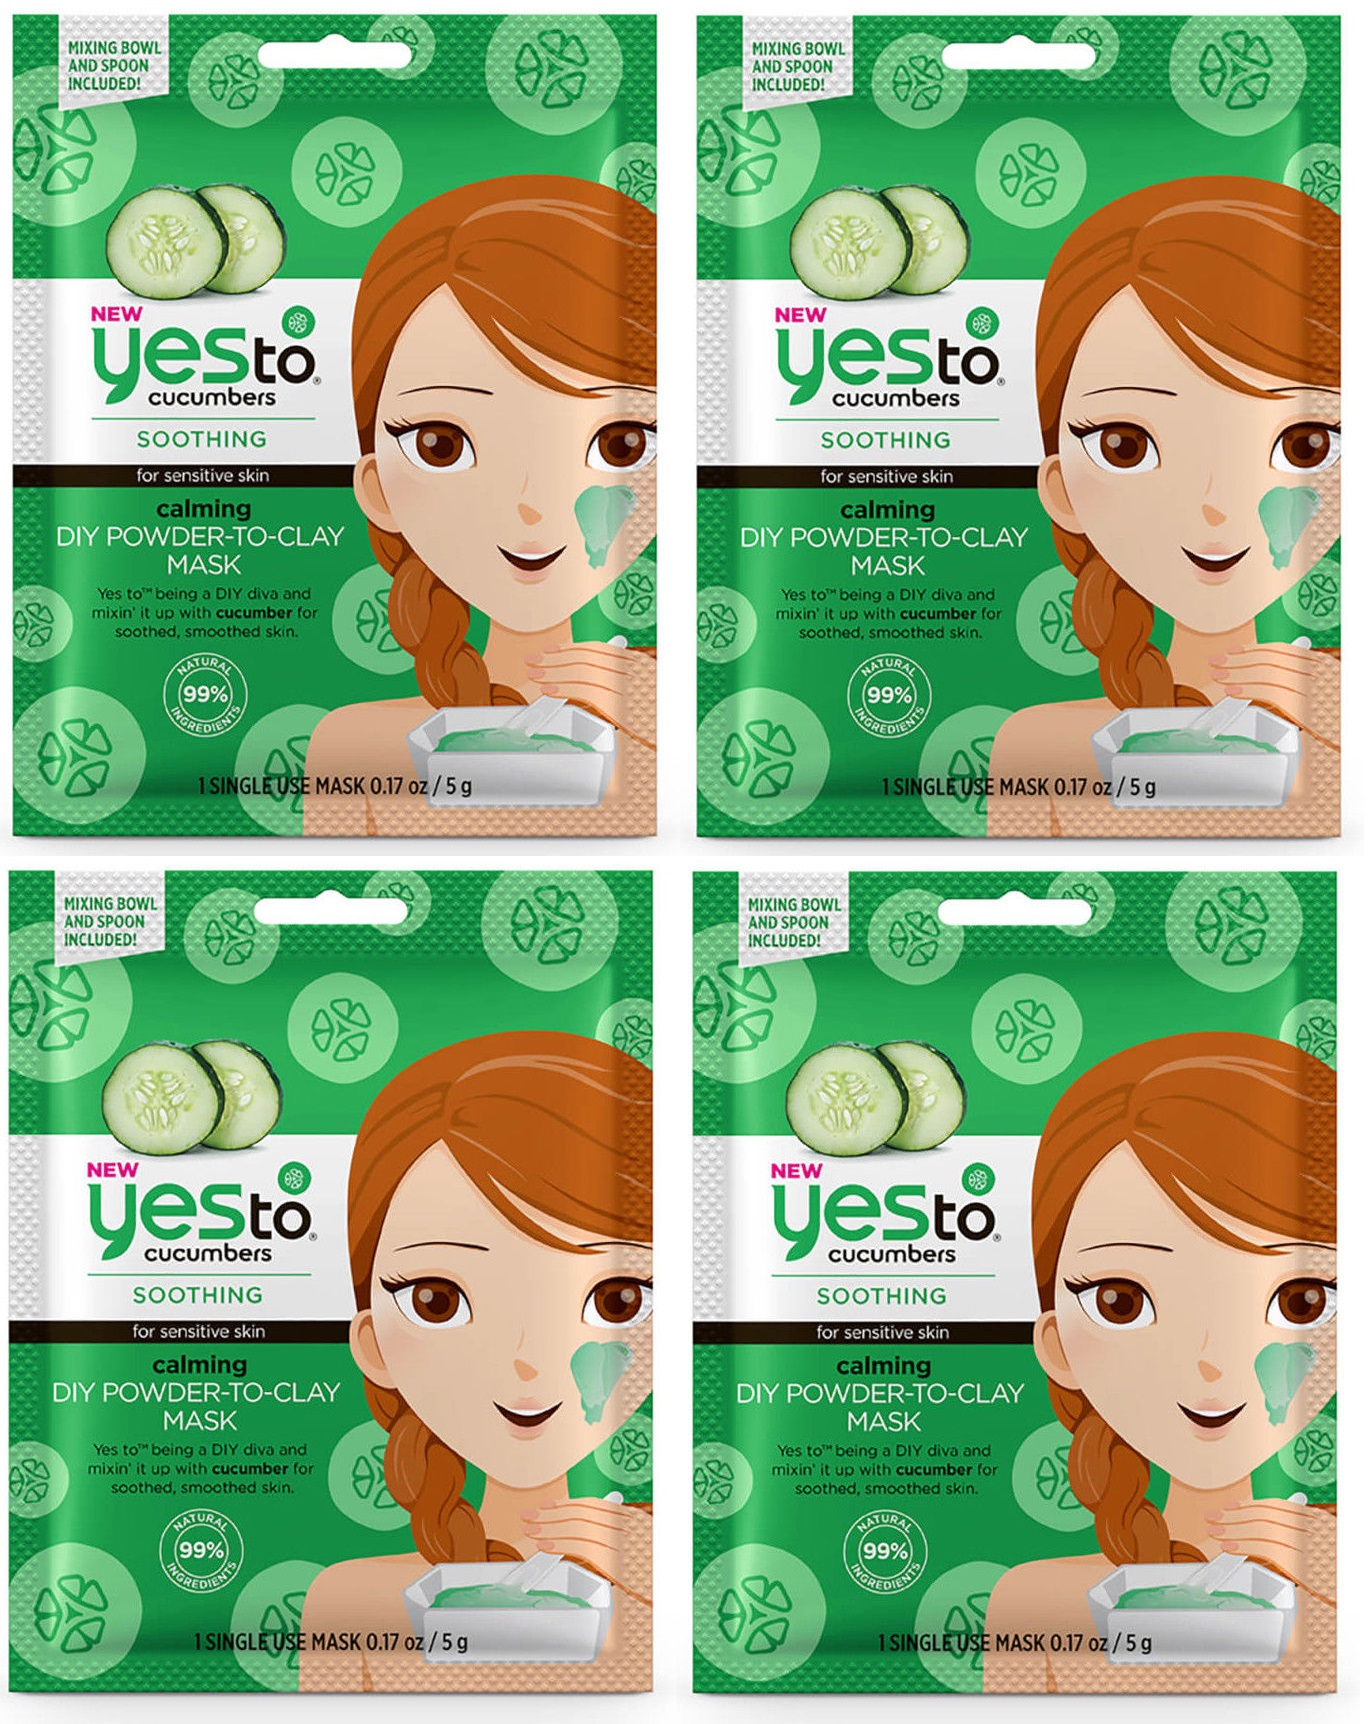 Cucumbers Calming DIY Powder To Clay Mask by yes to #10